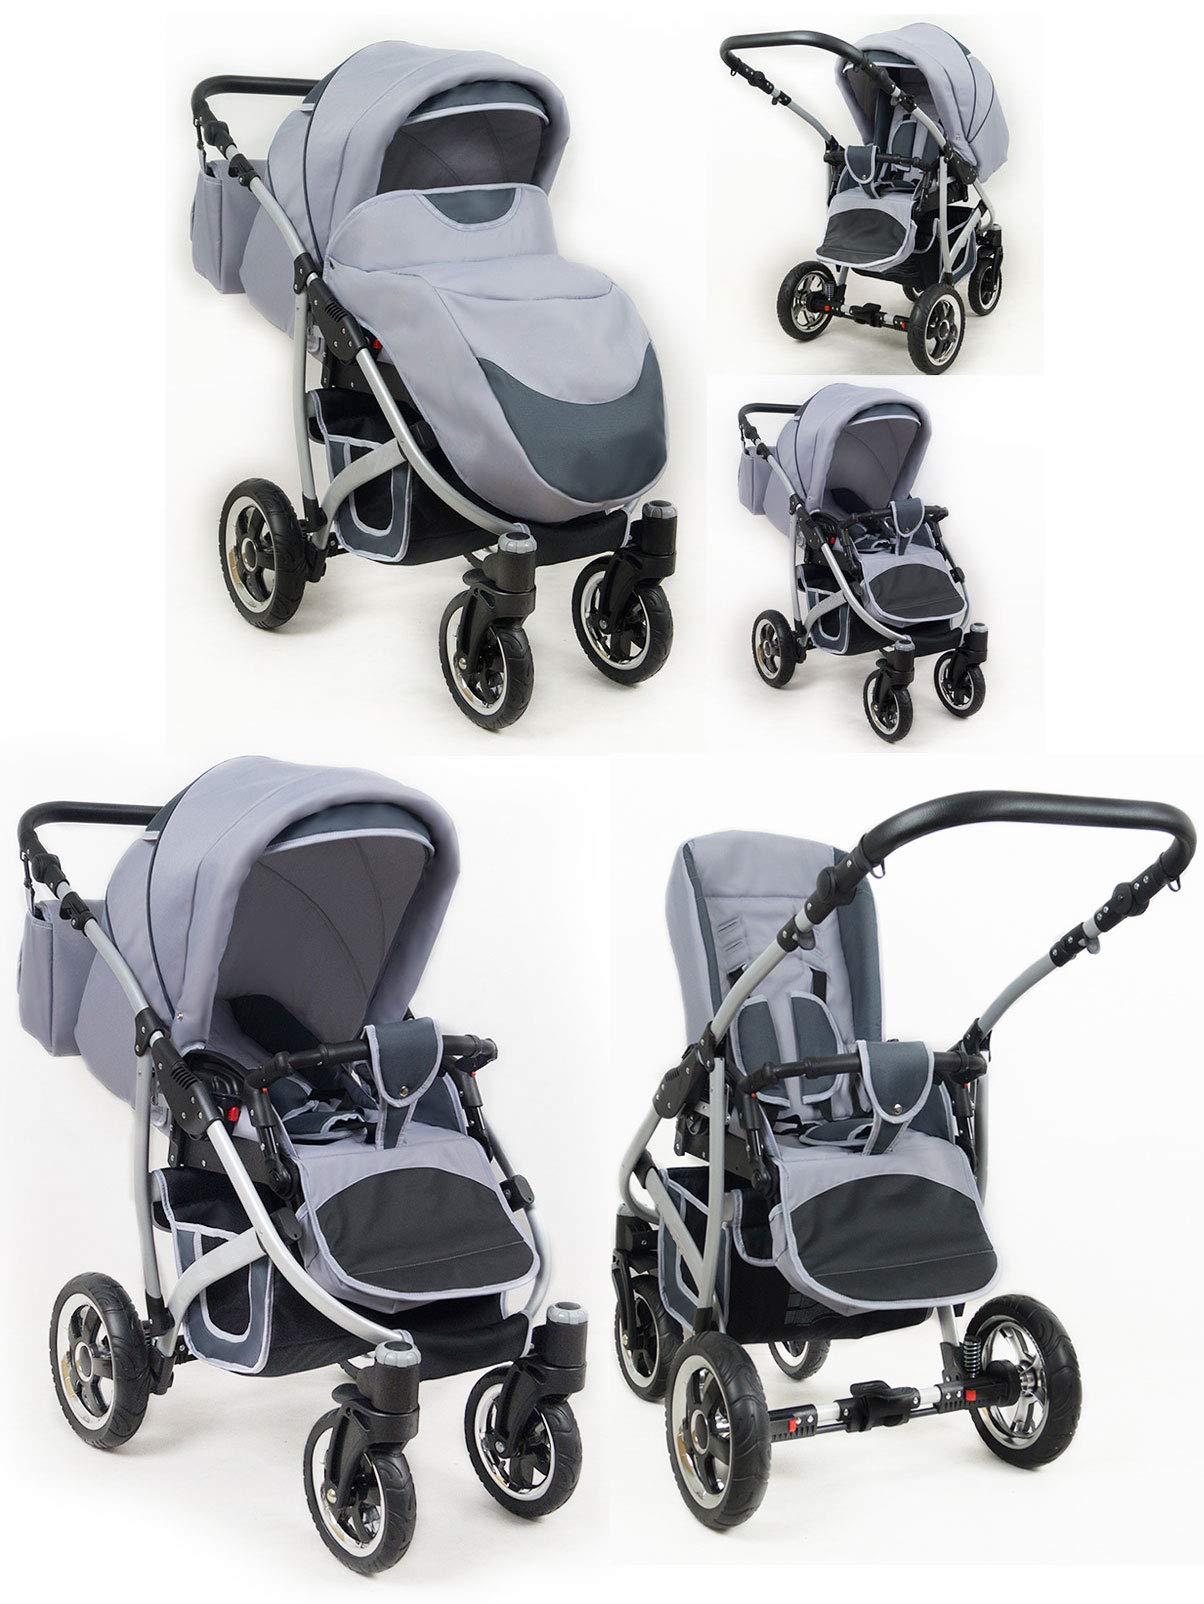 Lux4Kids 3 in 1 Combi pram Pushchair Stroller Complete Set with car seat Isofix Larmax Black & Pink 4in1 car seat +Isofix Lux4Kids Lux4Kids 4in1 or 3in1 or 2in1 pushchair. You have the choice whether you need a car seat (baby seat certified according to ECE R 44/04 or not). Of course, the Pram is stabil, safe and durable Certificate EN 1888:2004 Of course, the baby Basket has a rocking function when it is removed from the pram. The push handle adapts to your size and fits for everyone 5